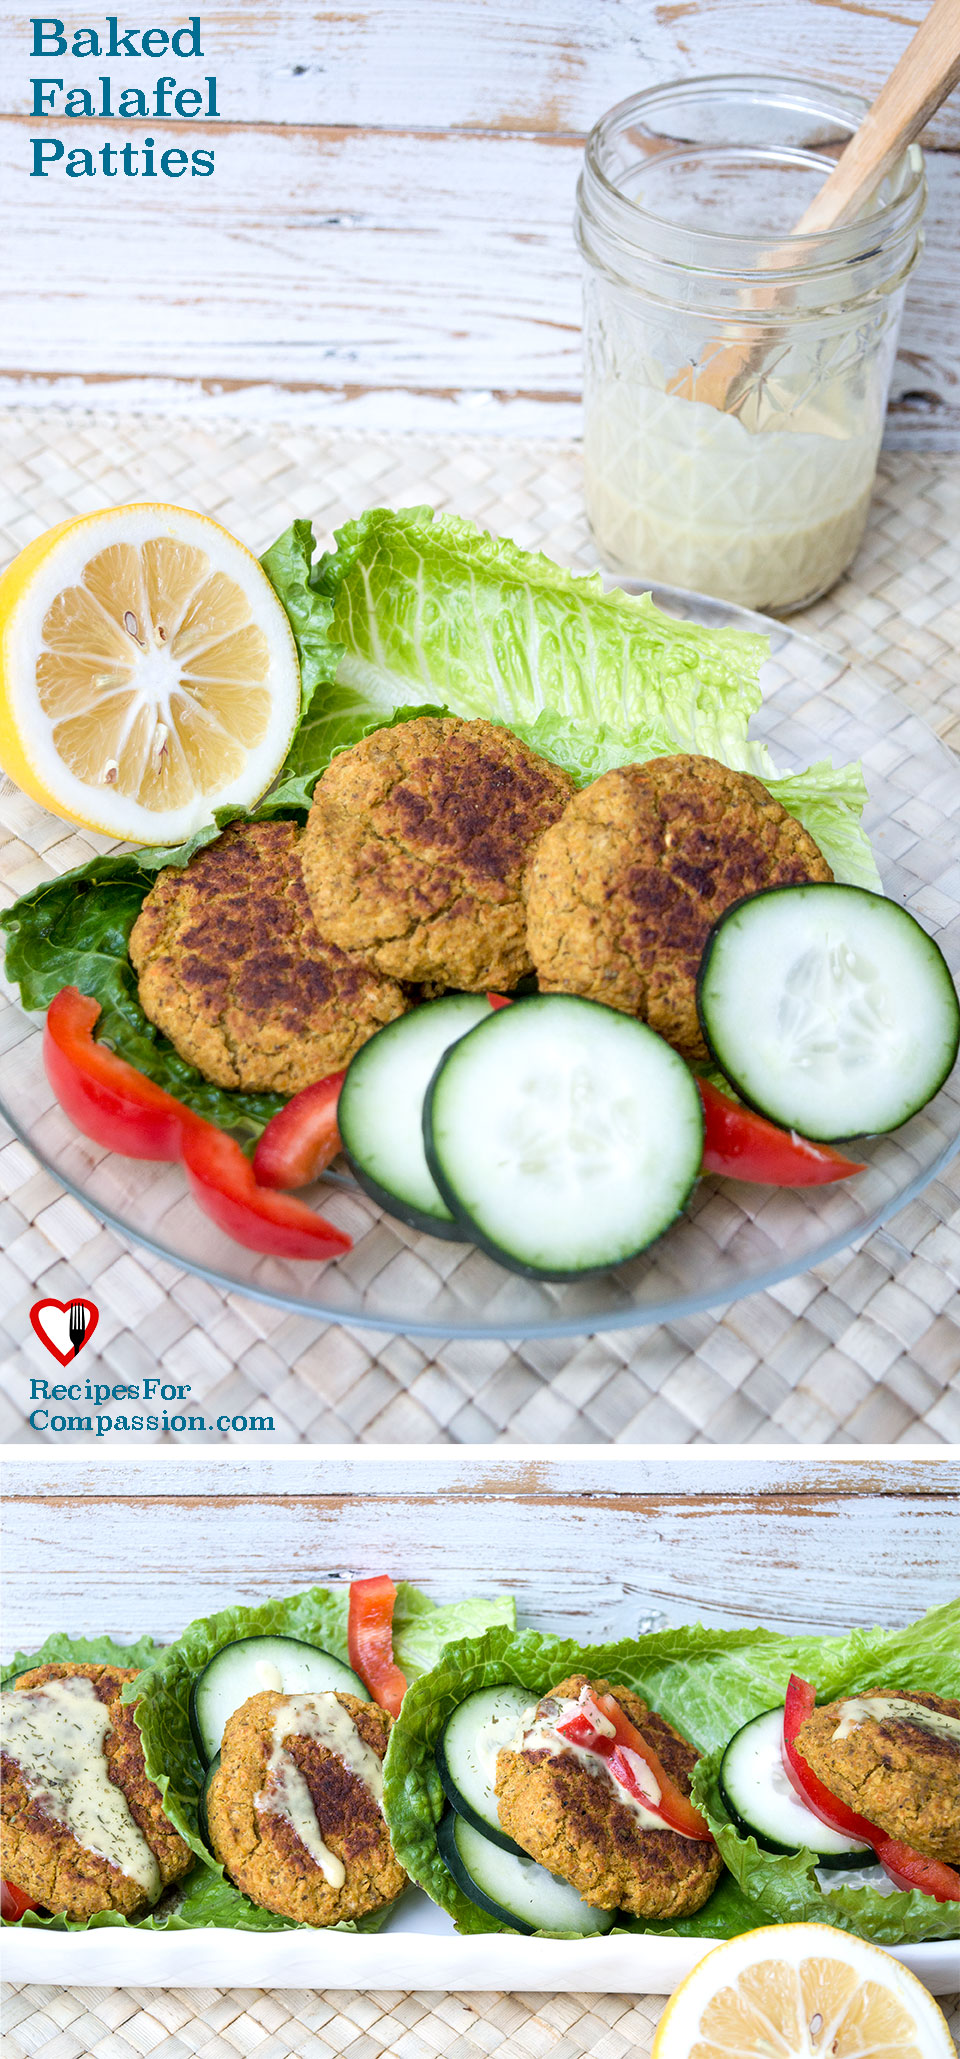 Baked Falafel Patties, baked falafel recipe, cashew tzatziki dressing, healthy falafels, lettuce wraps, minimalist baker falafel, oh she glows falafel, vegan chickpea recipe, vegan falafel dressing, vegan richa falafel, vegan tzatziki dressing, vegan tzatziki dressing recipe